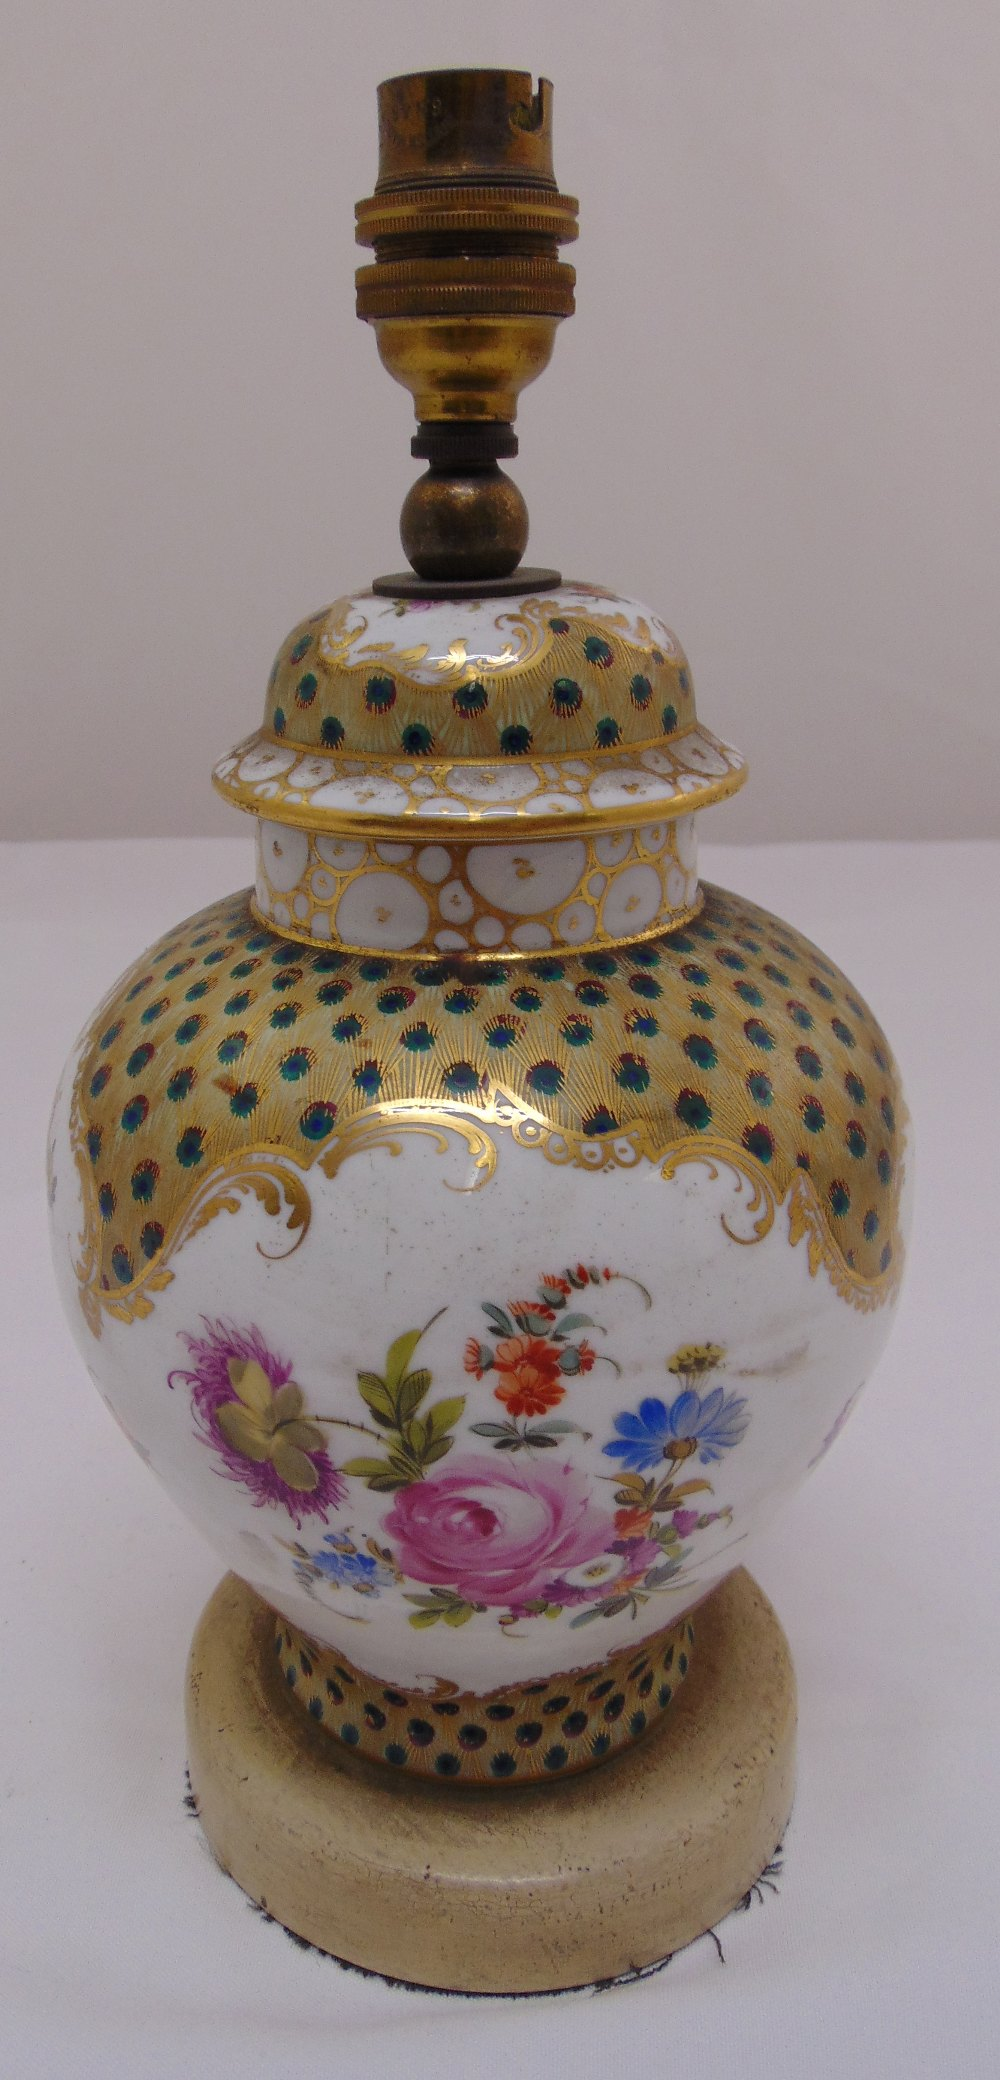 Lot 40 - A continental porcelain vase and cover converted to a lamp base, 20cm (h)